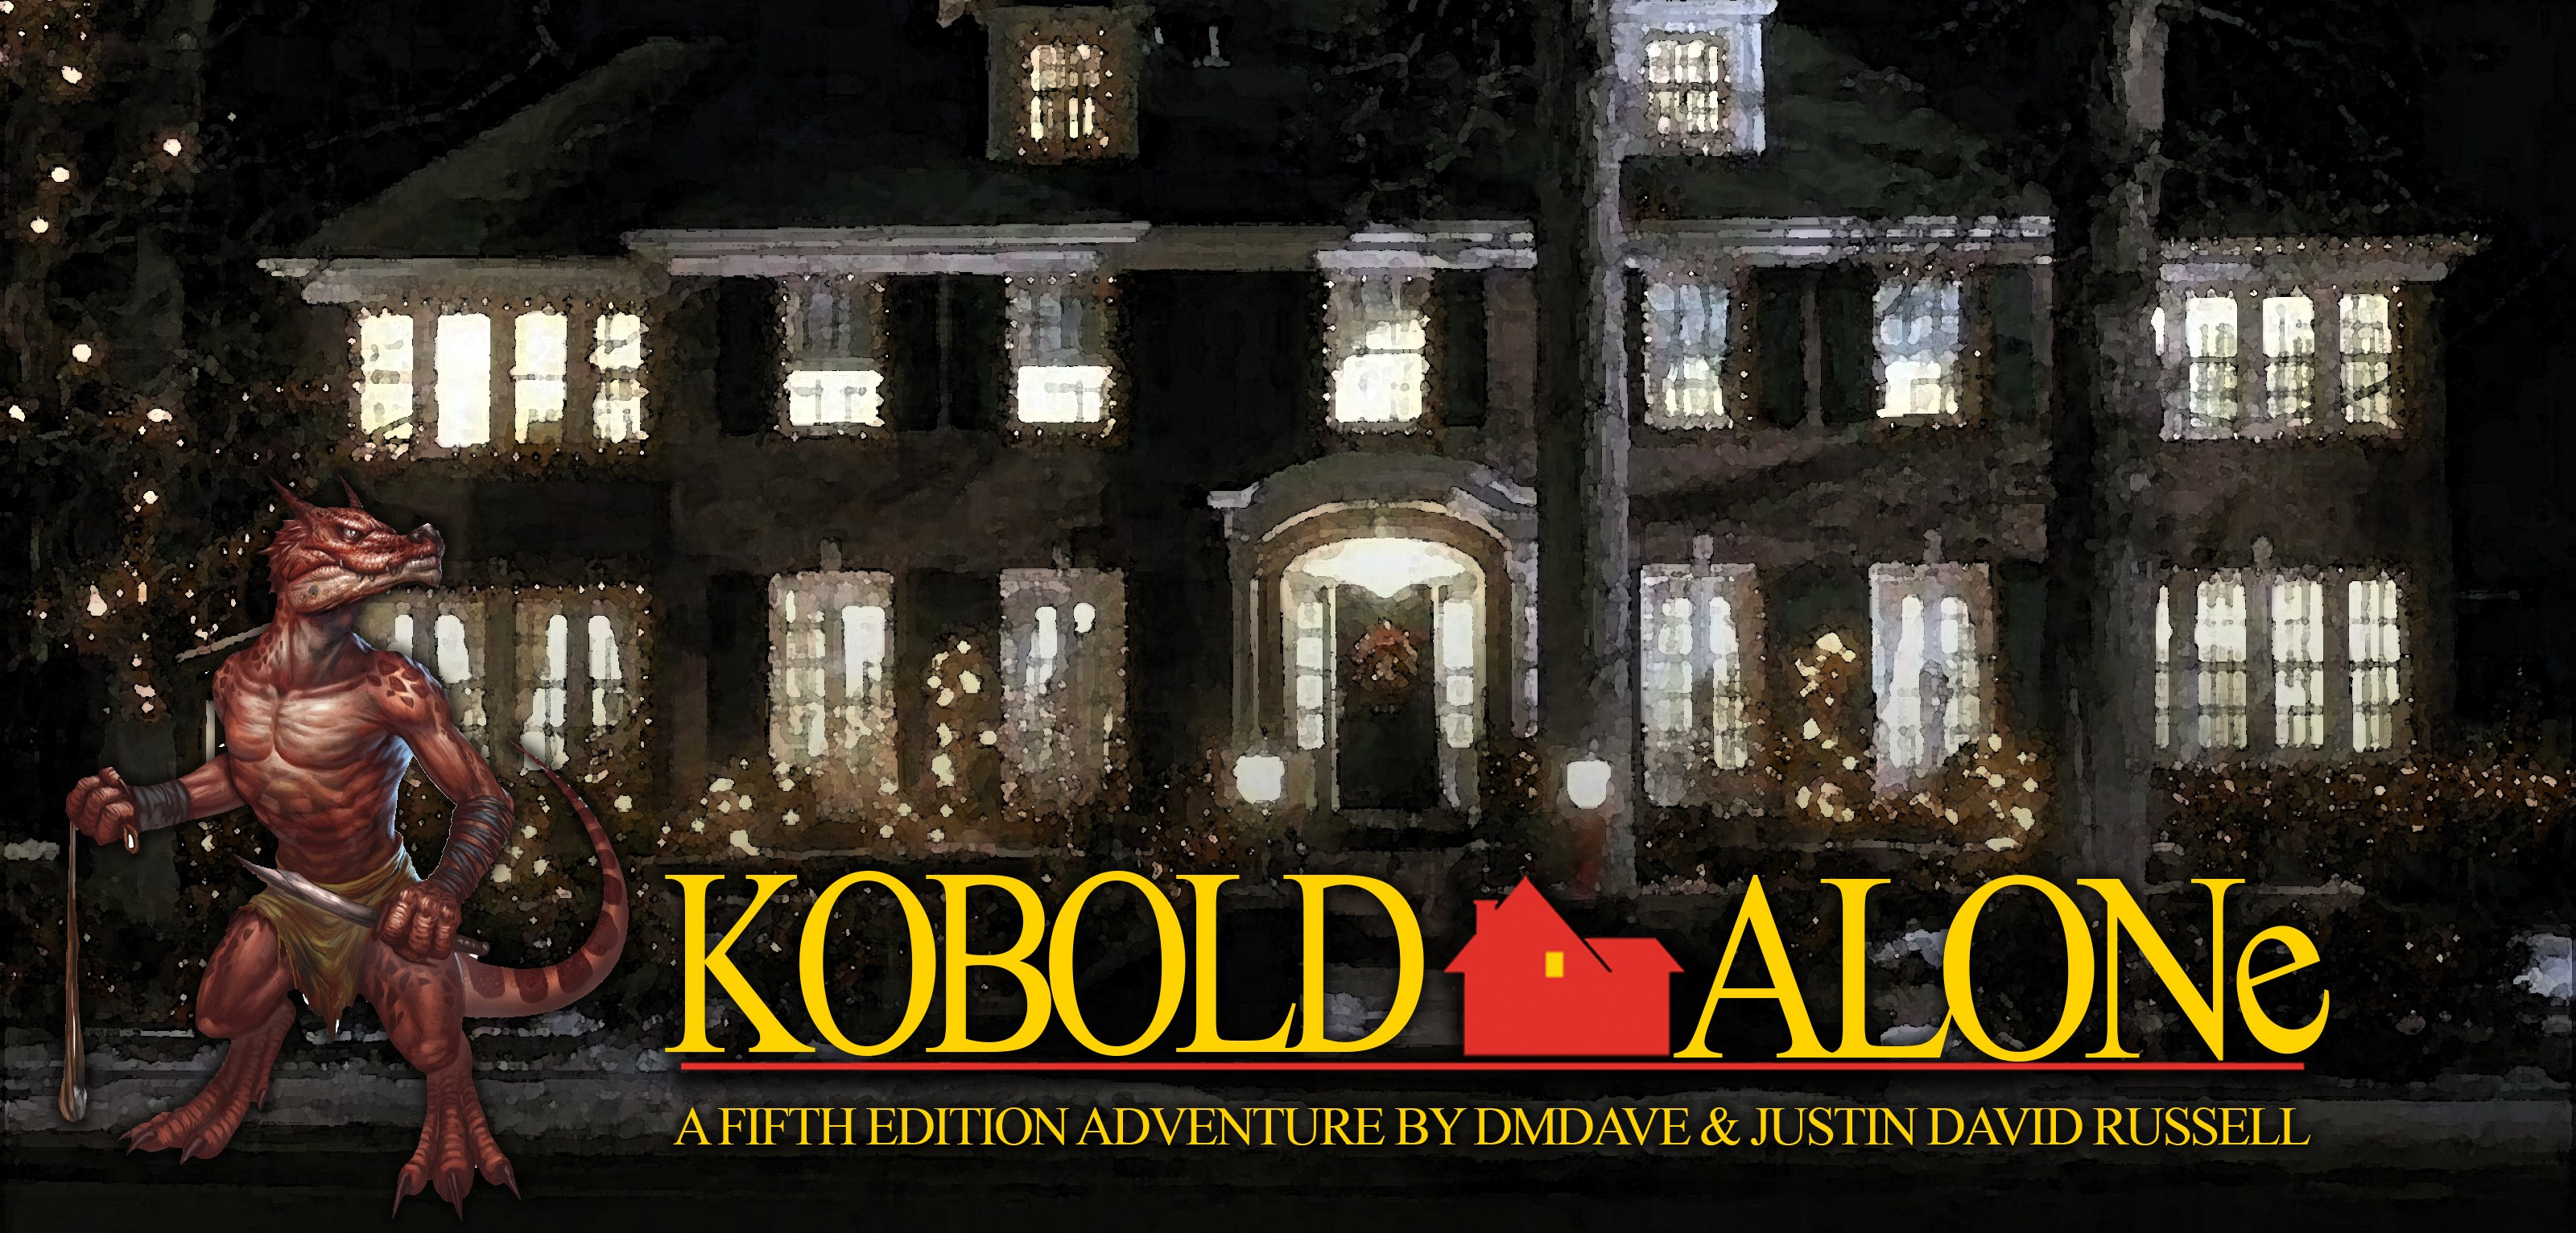 Kobold Alone 1st Level Holiday Adventure For Dungeons Dragons Fifth Edition Pdf Included Dmdave Fifth Edition Monsters Maps And More